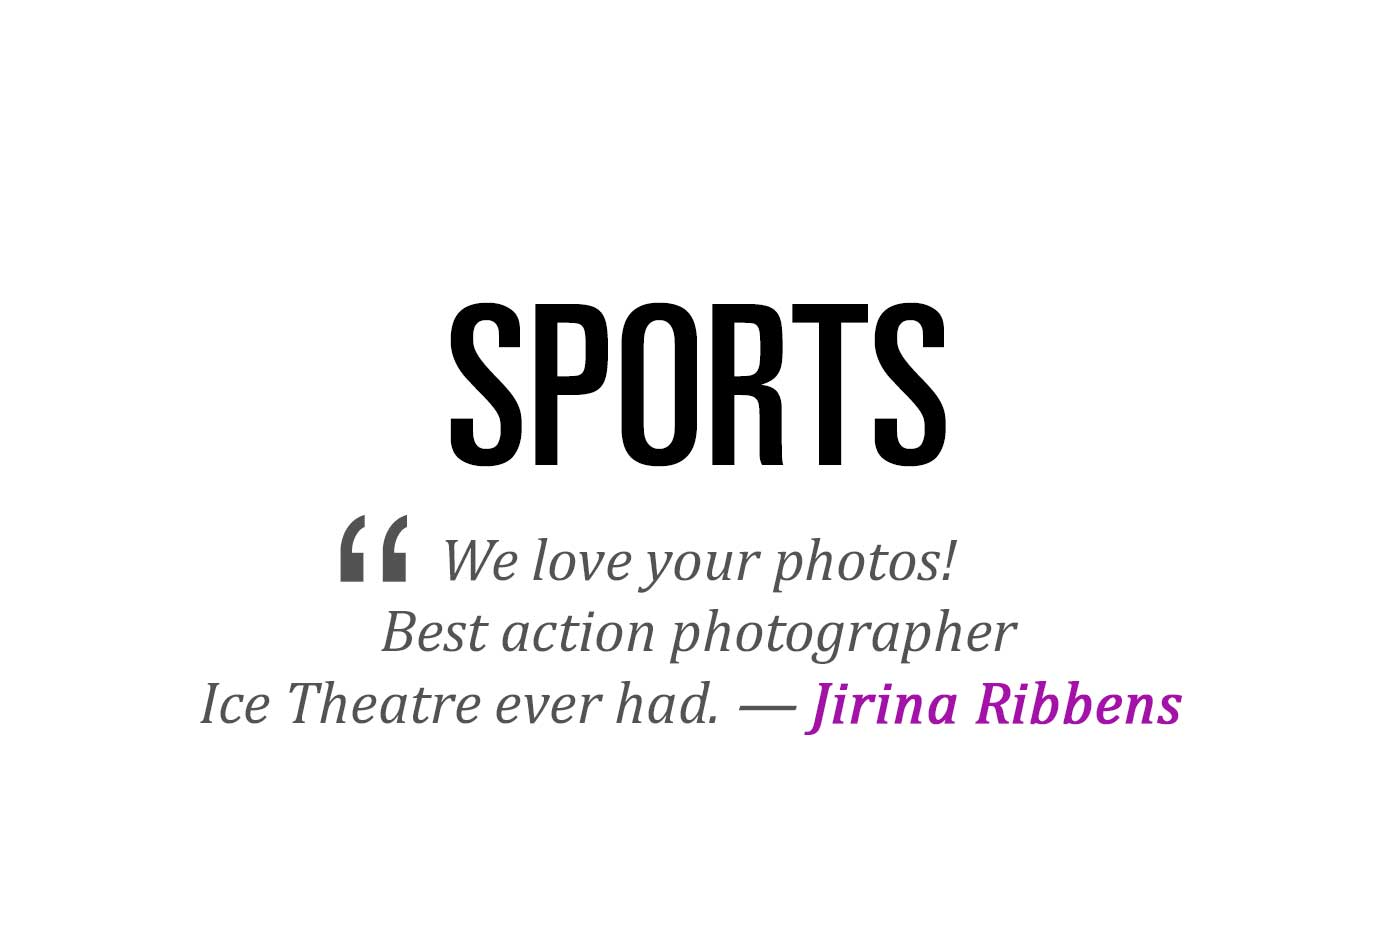 sports photography - We love your photos!Best action photographerIce Theatre ever had.